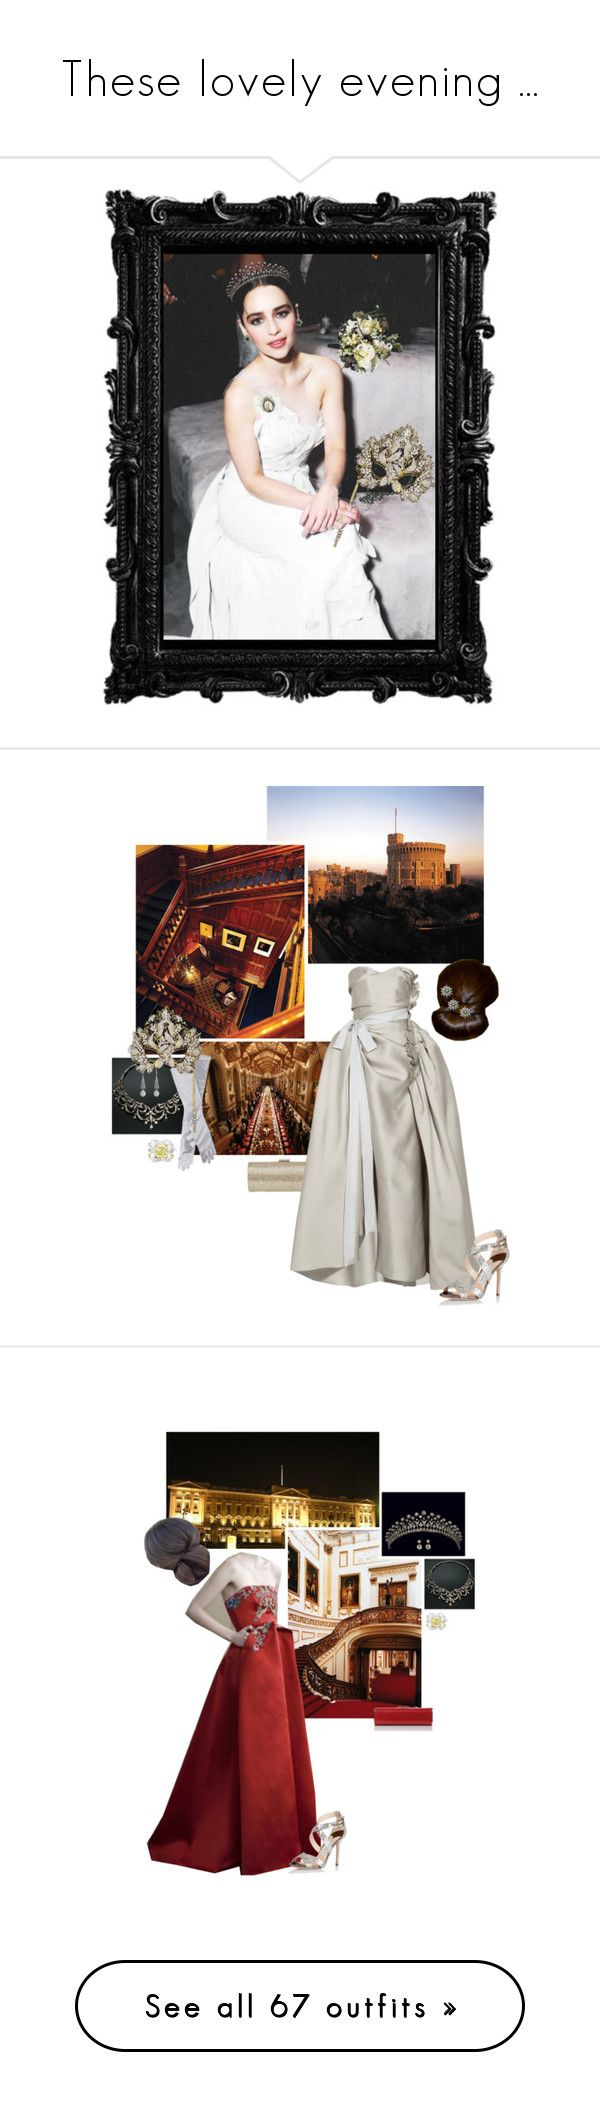 """These lovely evening ..."" by duchessq ❤ liked on Polyvore featuring Elizabeth Taylor, CO, Jimmy Choo, Lanvin, TIARA, L.K.Bennett, Rubin Singer, Masquerade, Alexander McQueen and Zara"